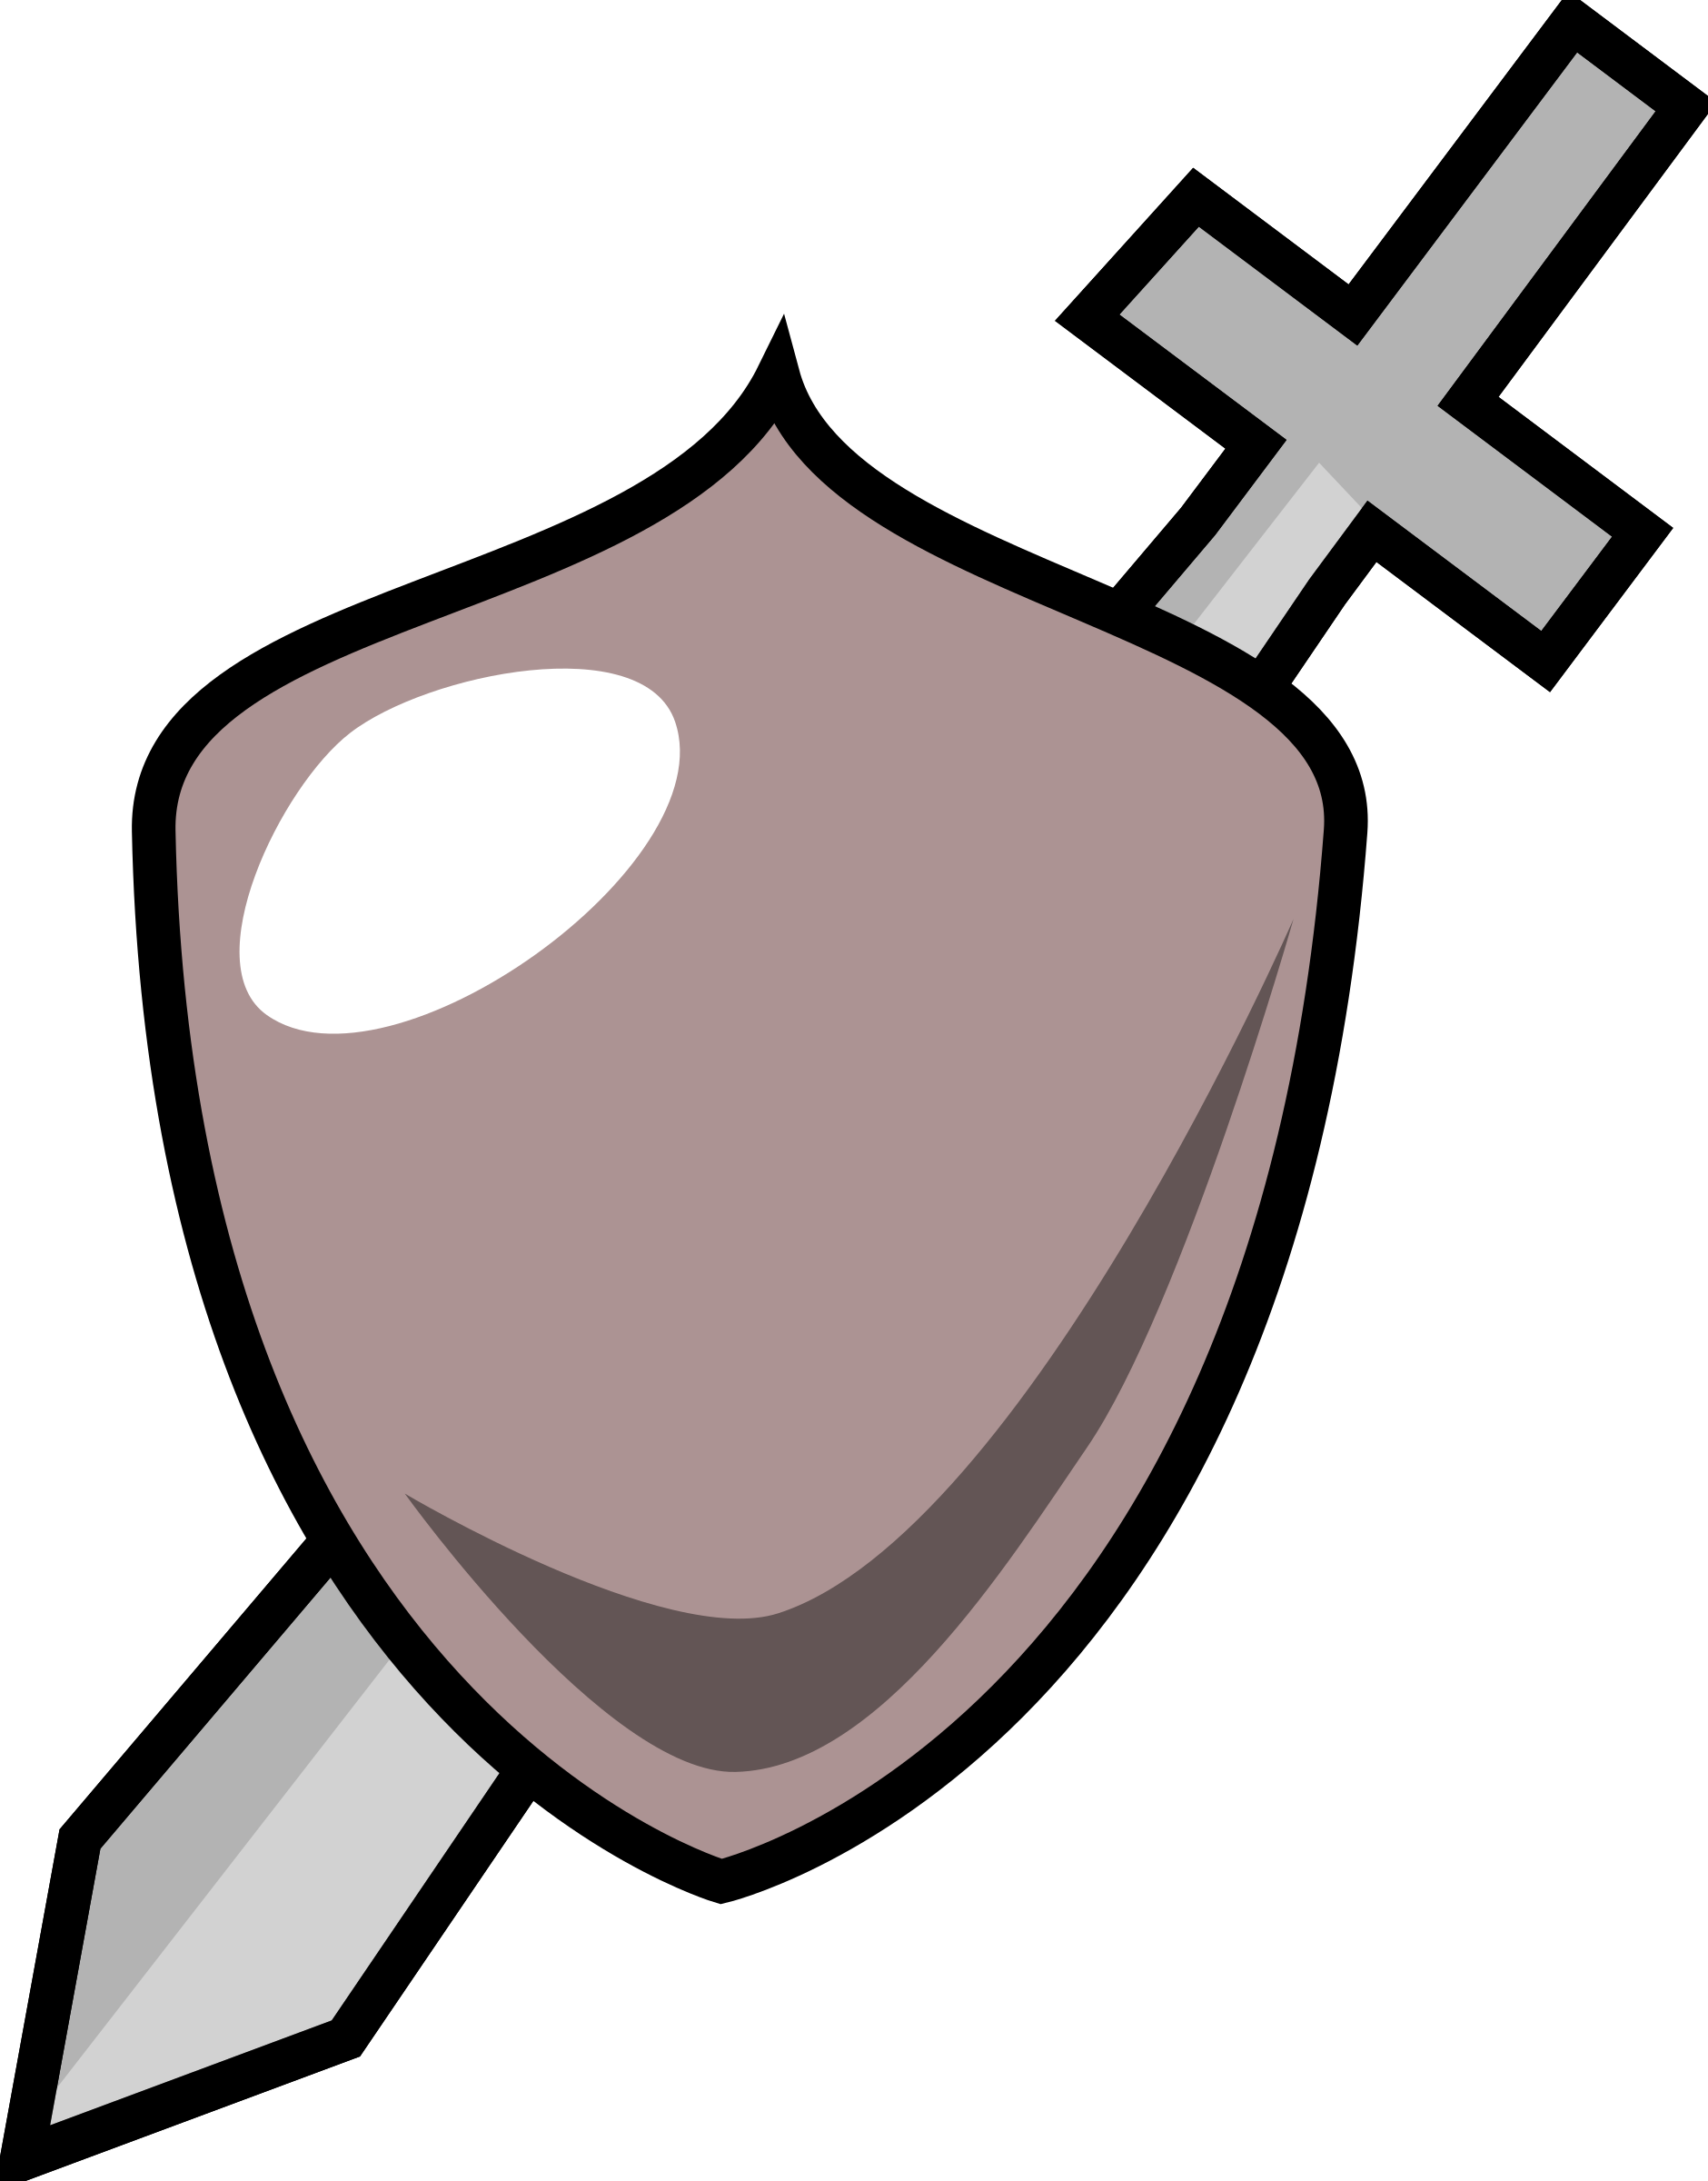 Sword and shield icon by purzen